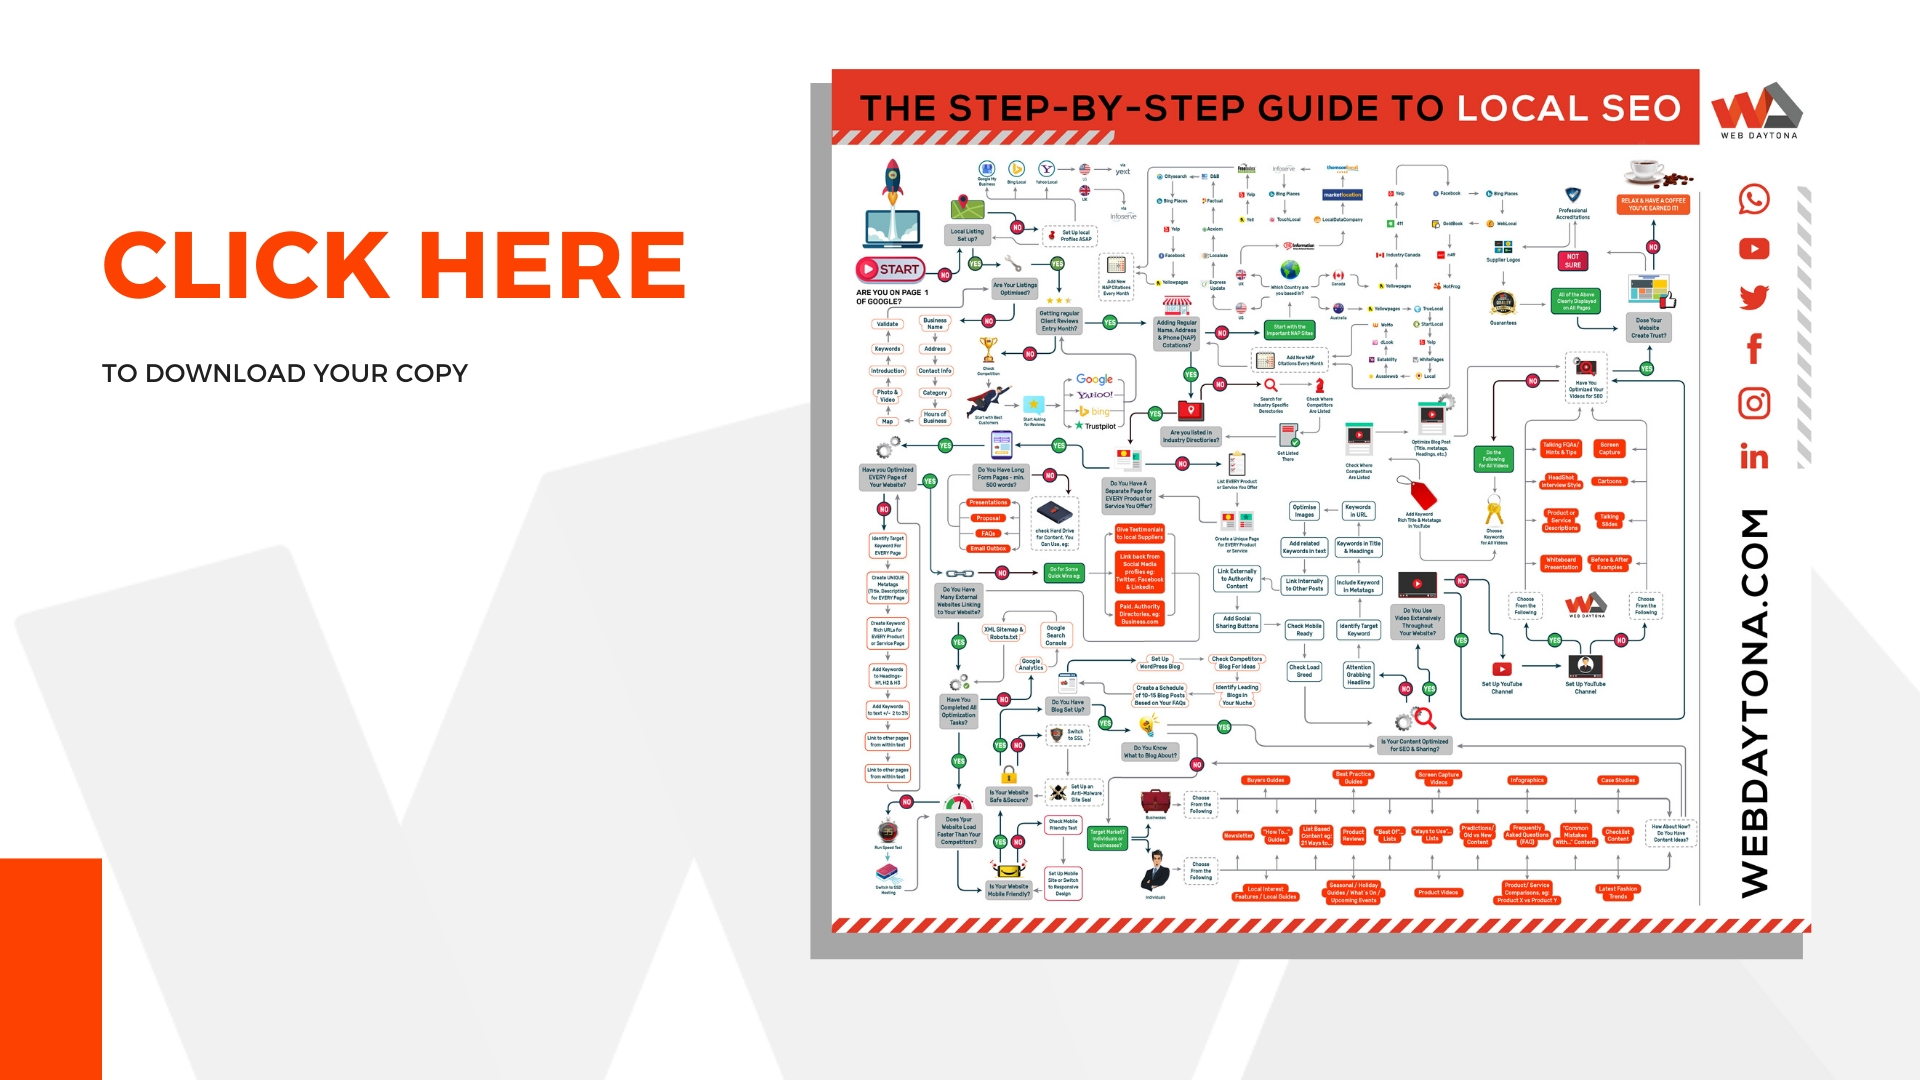 Step by Step Guide to Local SEO